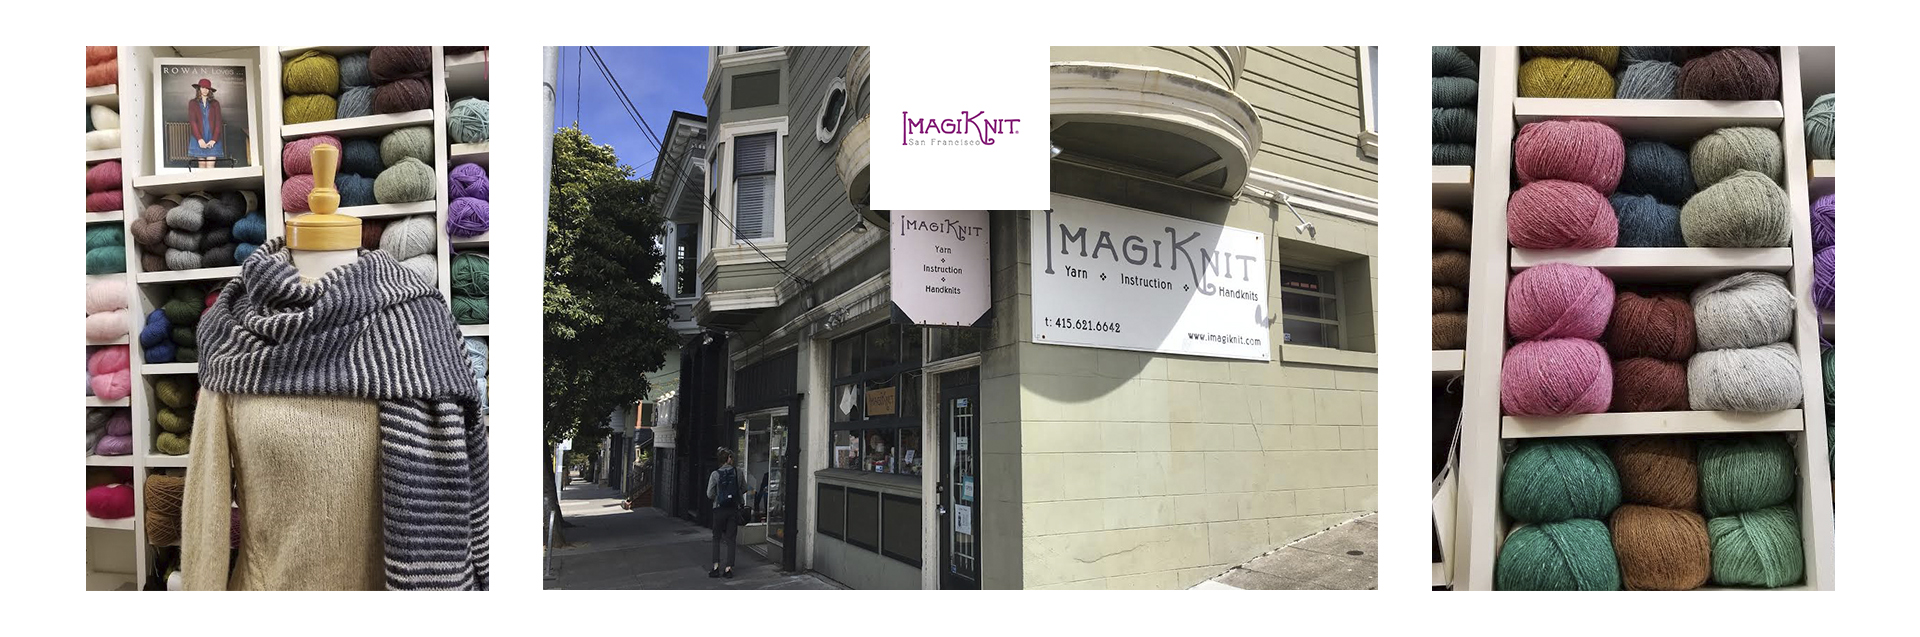 ImagiKnit has been San Francisco's destination yarn shop for over 18 years. Rowan yarns and accessories have been store favorites since the shop opening.